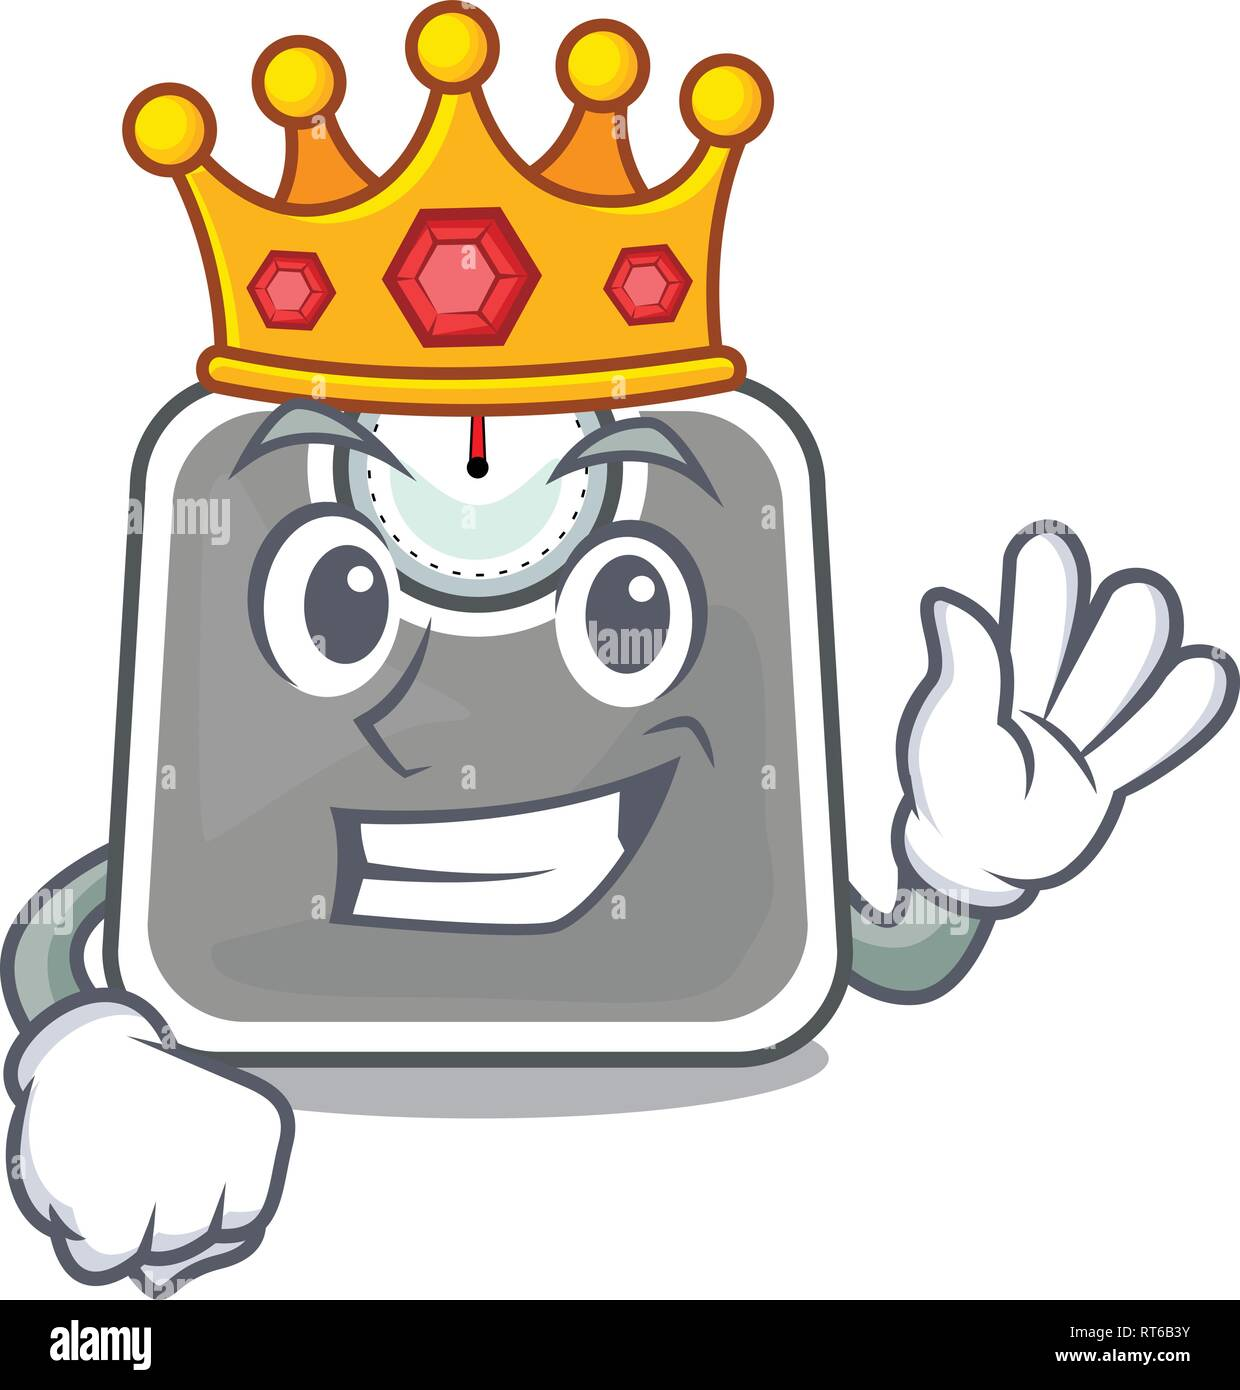 King weight scala isolated with in cartoons - Stock Image